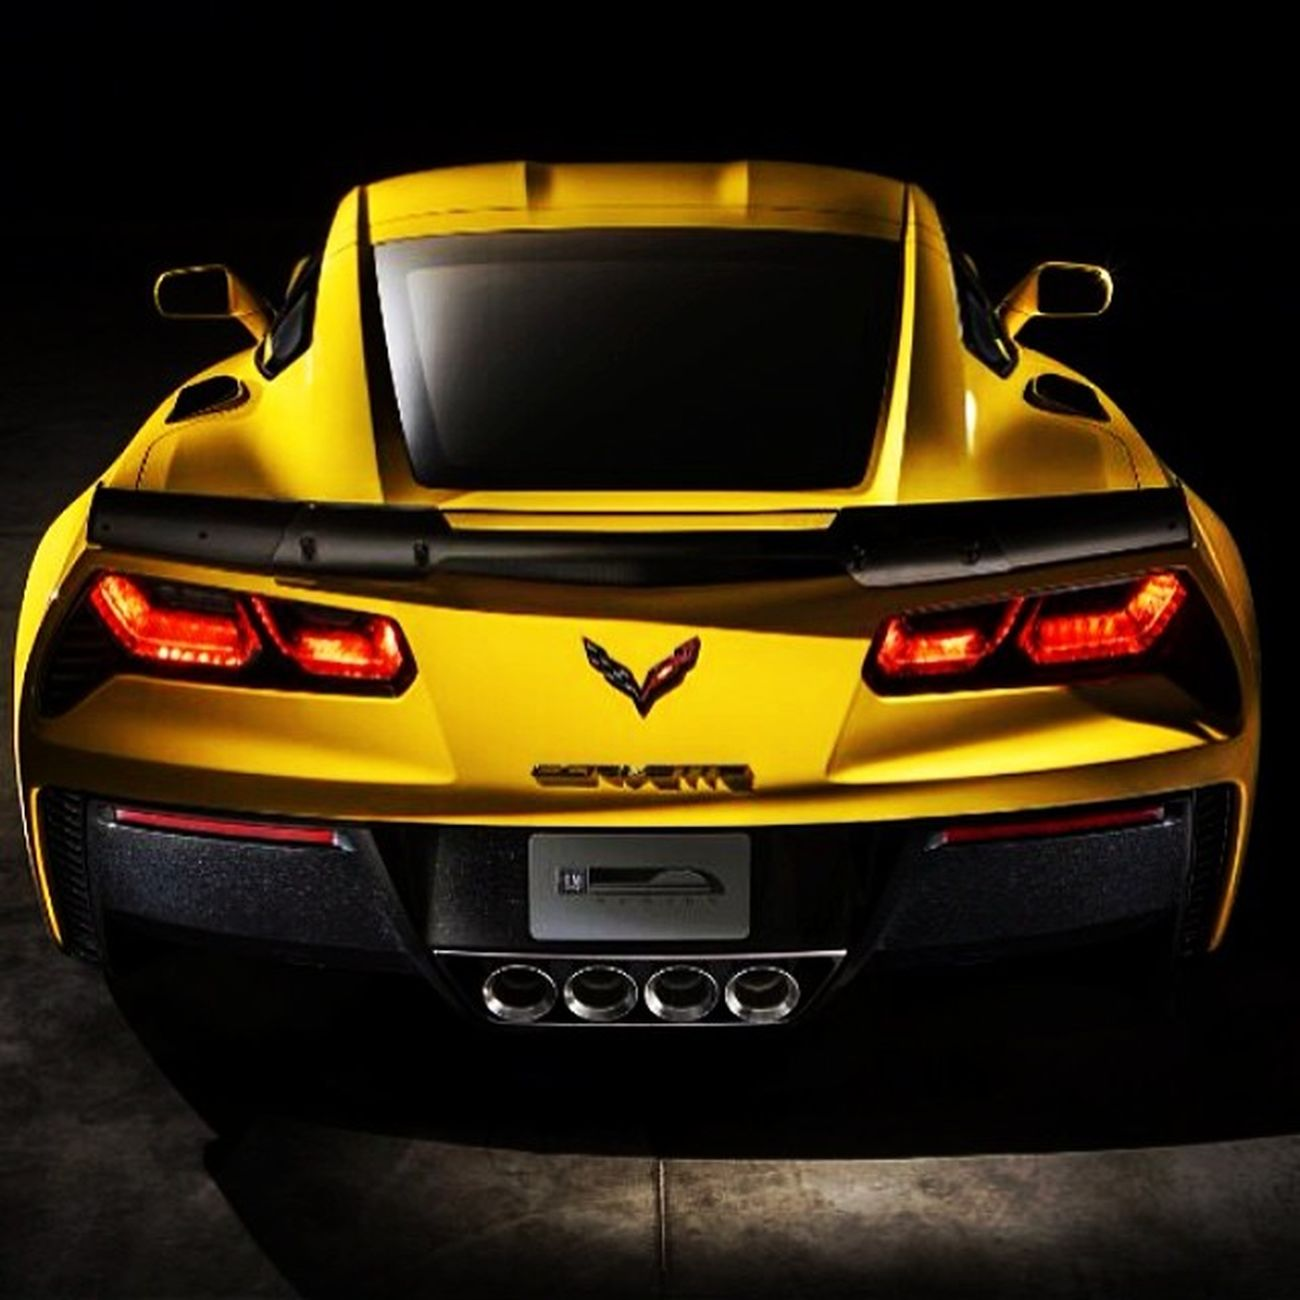 "?Uprising THE ALL-NEW 2015 Corvette Zo6 Downforce ""when track meets street"" 625 supercharged supercar. ????"